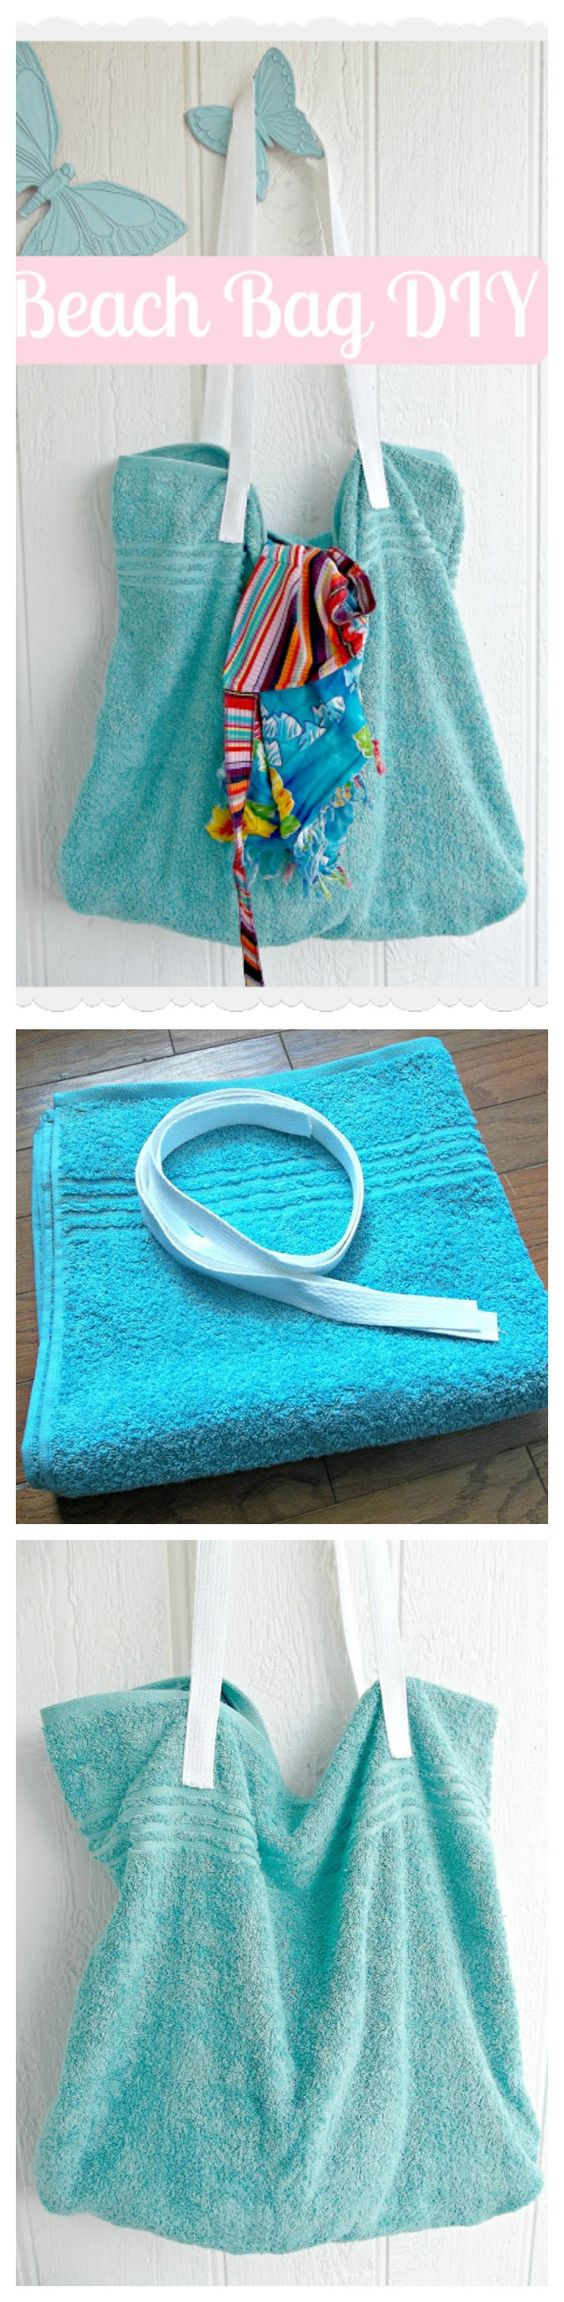 DIY Beach Bag from a Bath Towel!: Beach Bags Diy, Bath Towel Crafts, Diy Crafts, Beach Towel Bag Diy, Diy Beach Bags, Sewing Bags, Craft Ideas